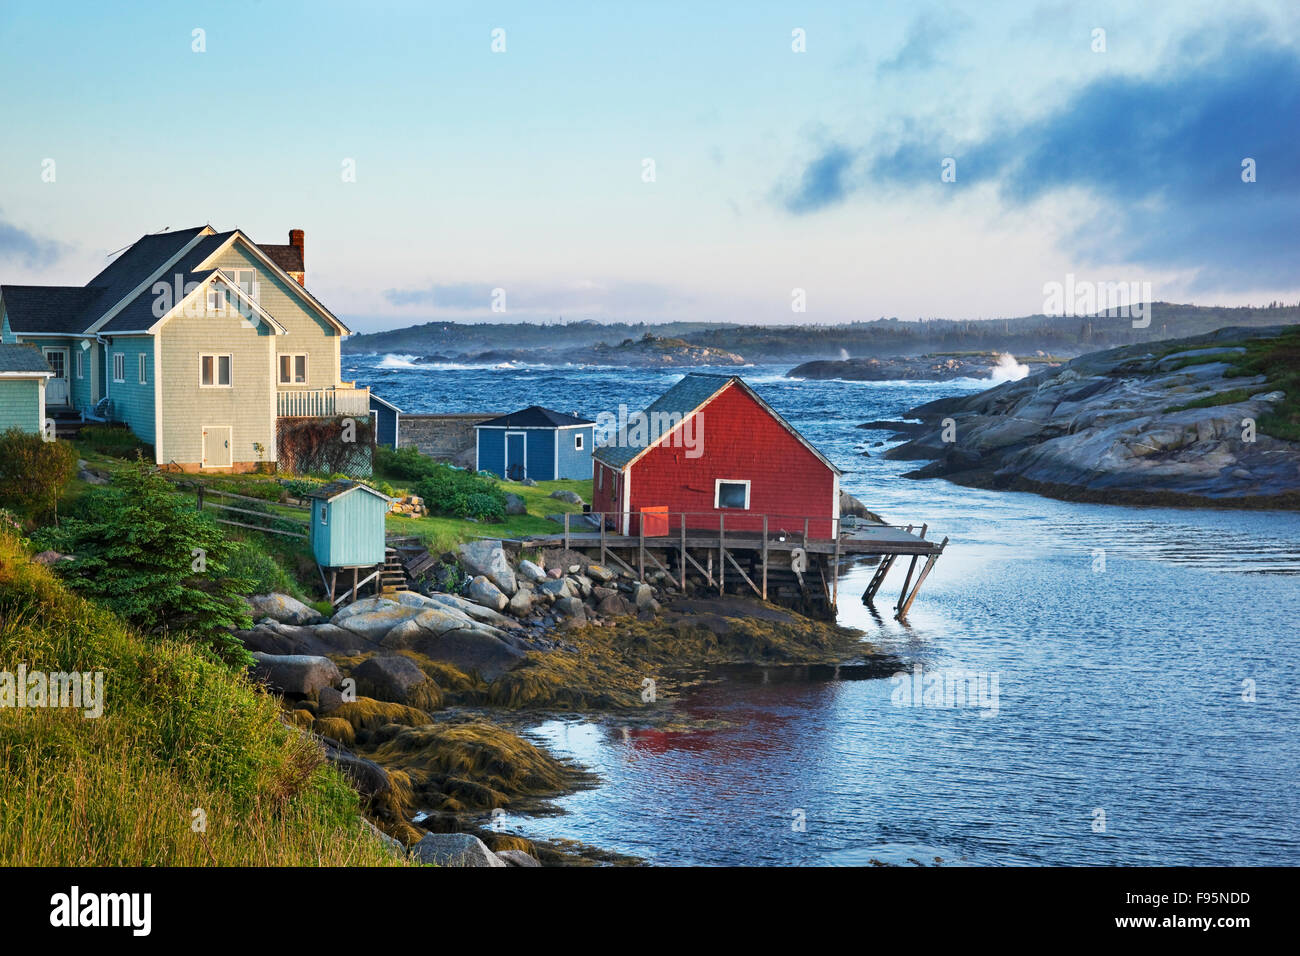 Seaside home across from rocks and crashing waves in Peggy's Cove, Nova Scotia - Stock Image